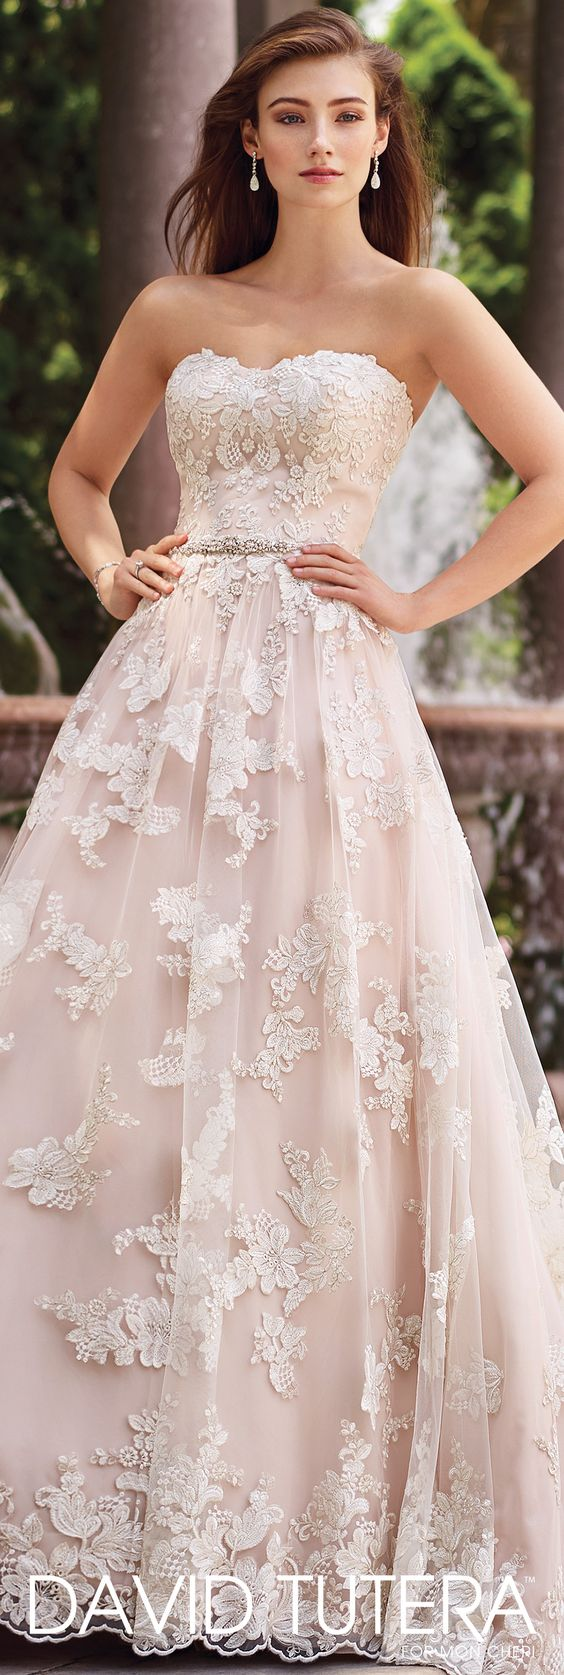 David Tutera for Mon Cheri Spring 2017 Collection - Style No. 117276 Tala - blush pink lace and tulle wedding dress: